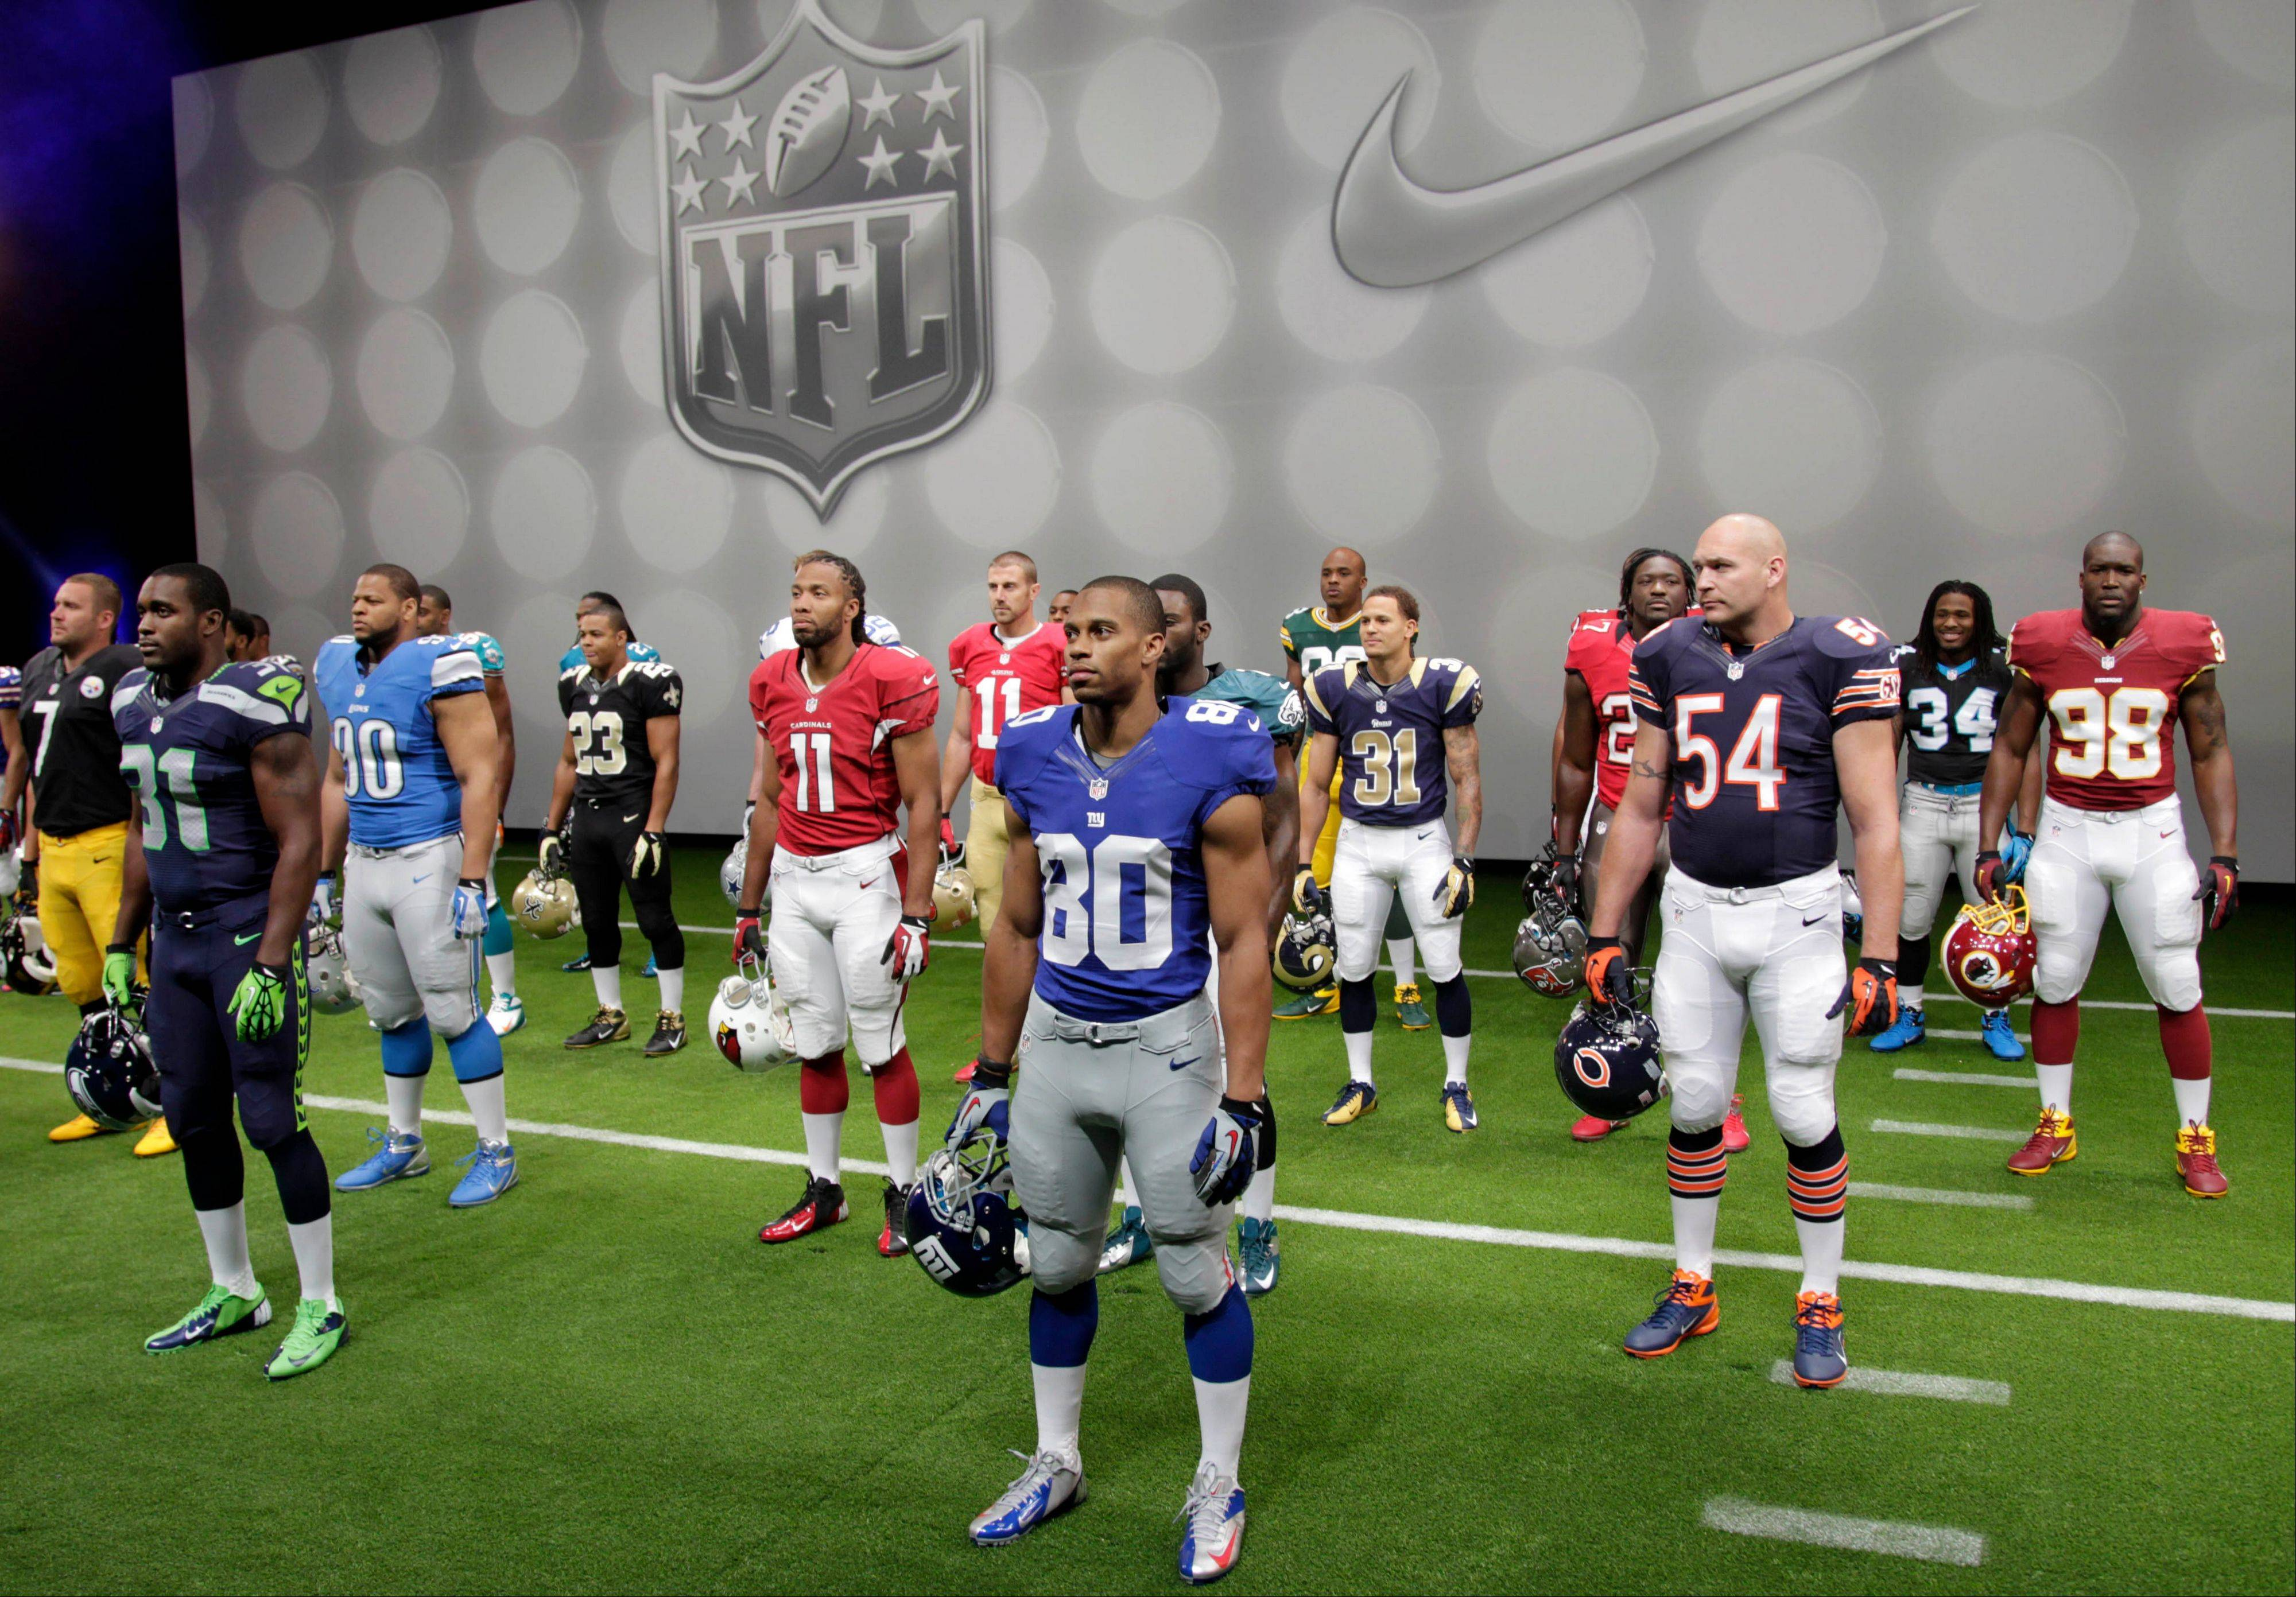 NFL players stand in their new uniforms during a presentation in New York, Tuesday, April 3, 2012. The league and Nike showed off the new look in grand style with a gridiron-styled fashion show at a Brooklyn film studio.